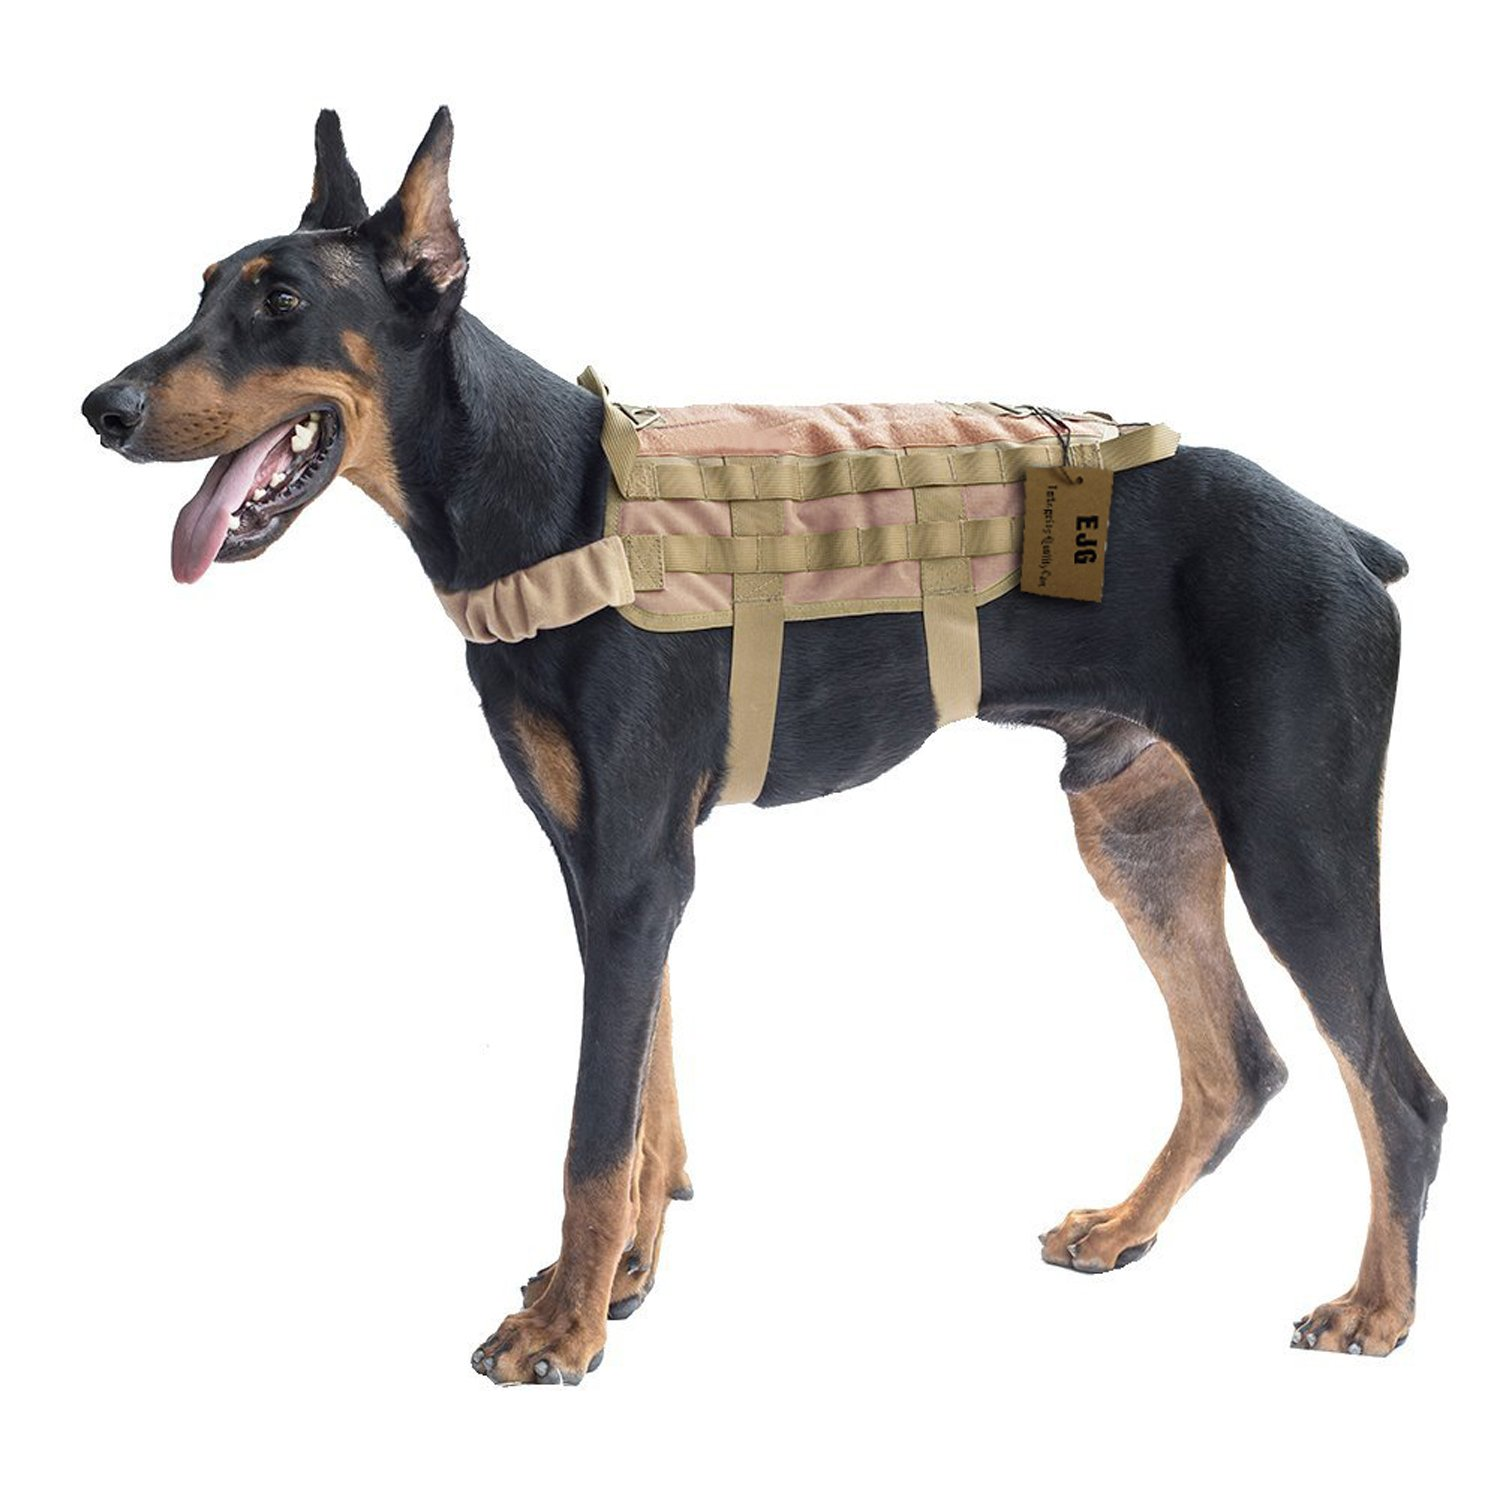 Brown X-Large Brown X-Large Military Tactical Service Dog Training Vest Police Molle Dog Harness Camping Hiking Traveling Nylon Adjustable Coat for Medium Large Dog Brown XL by YJG